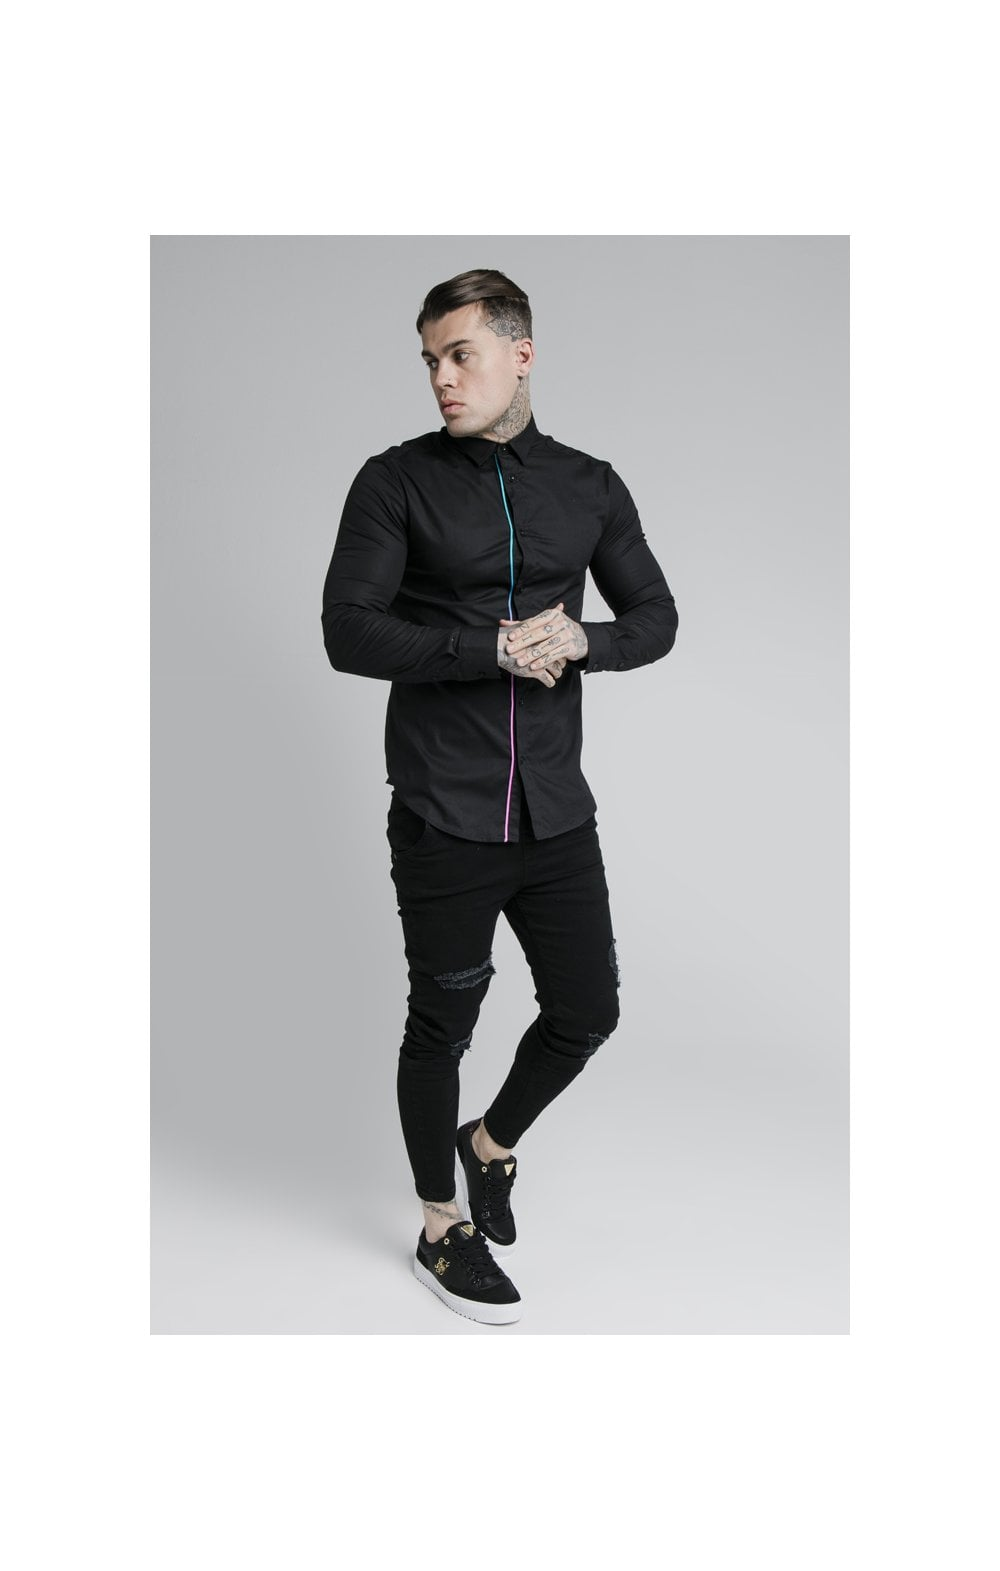 Load image into Gallery viewer, SikSilk L/S Fade Piping Shirt - Black & Neon Fade (2)